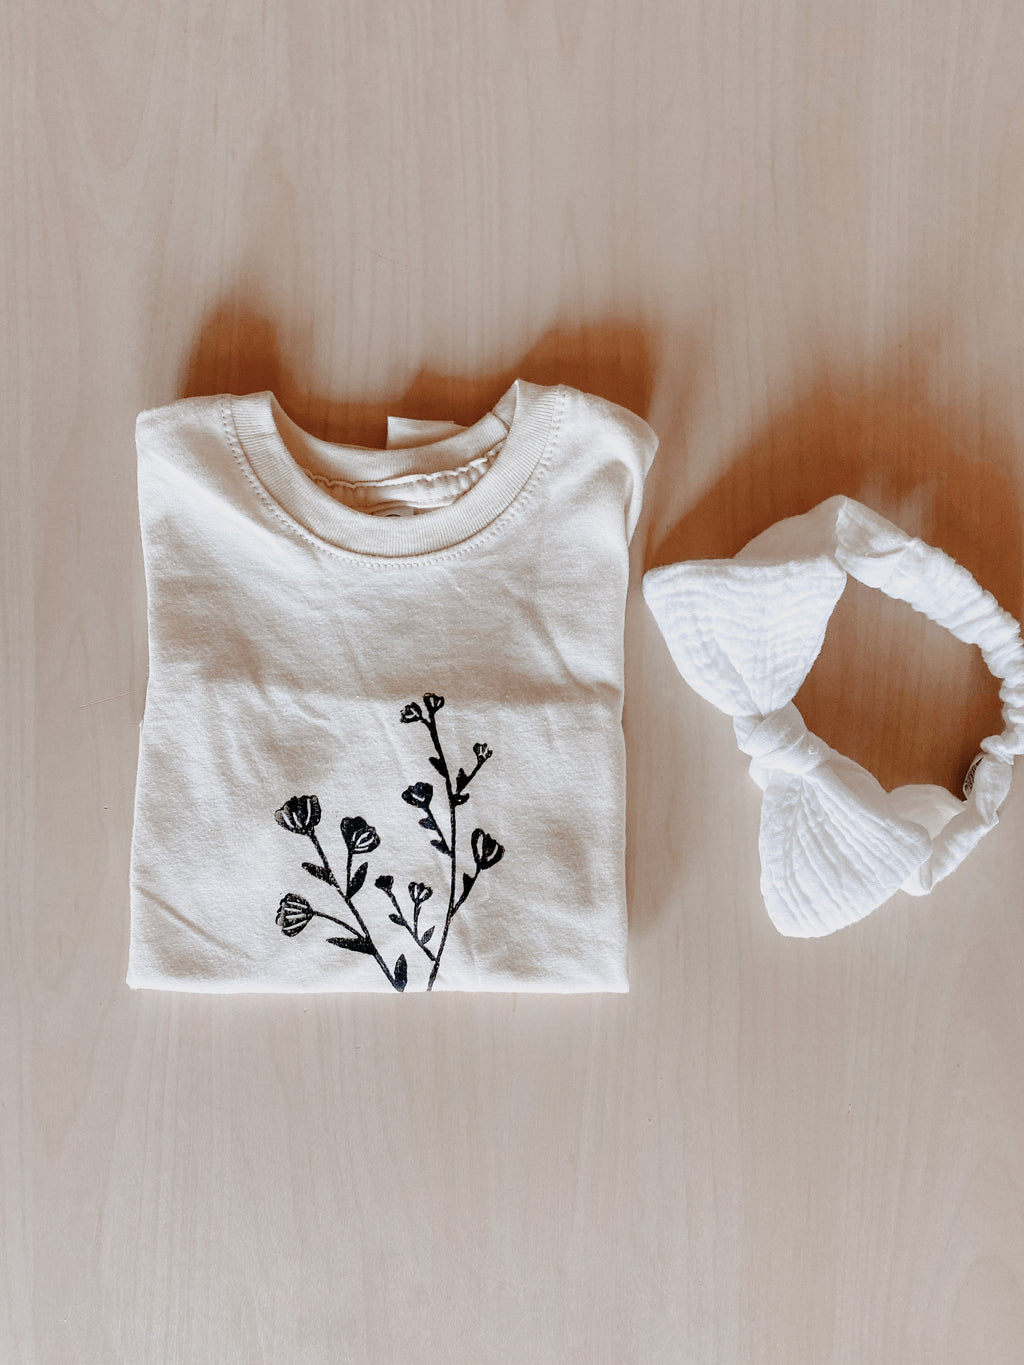 Floral Toddler Tees